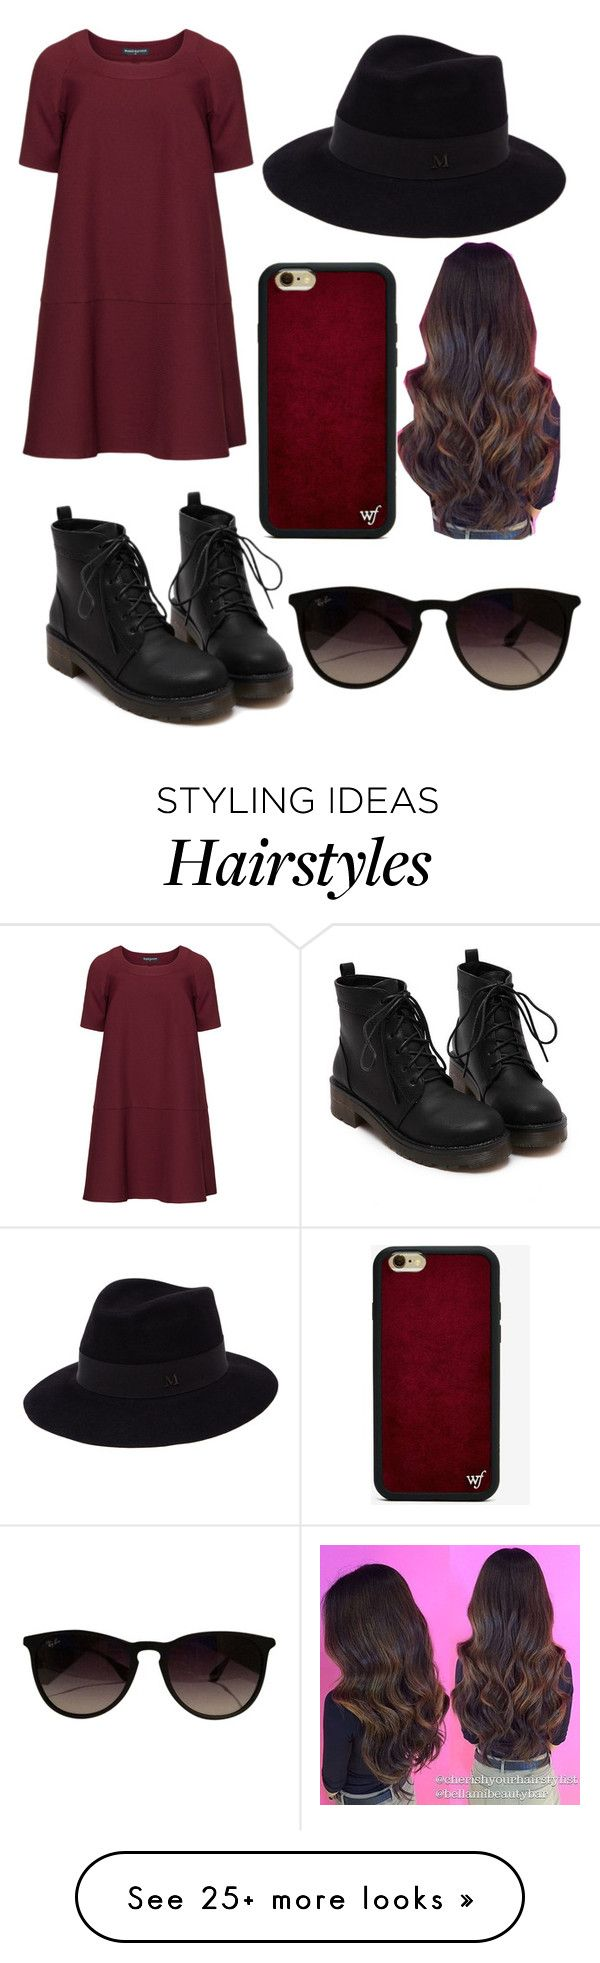 """""""Sin título #113"""" by erikabojorquez on Polyvore featuring Manon Baptiste, Maison Michel, Wildflower, Ray-Ban and plus size dresses"""